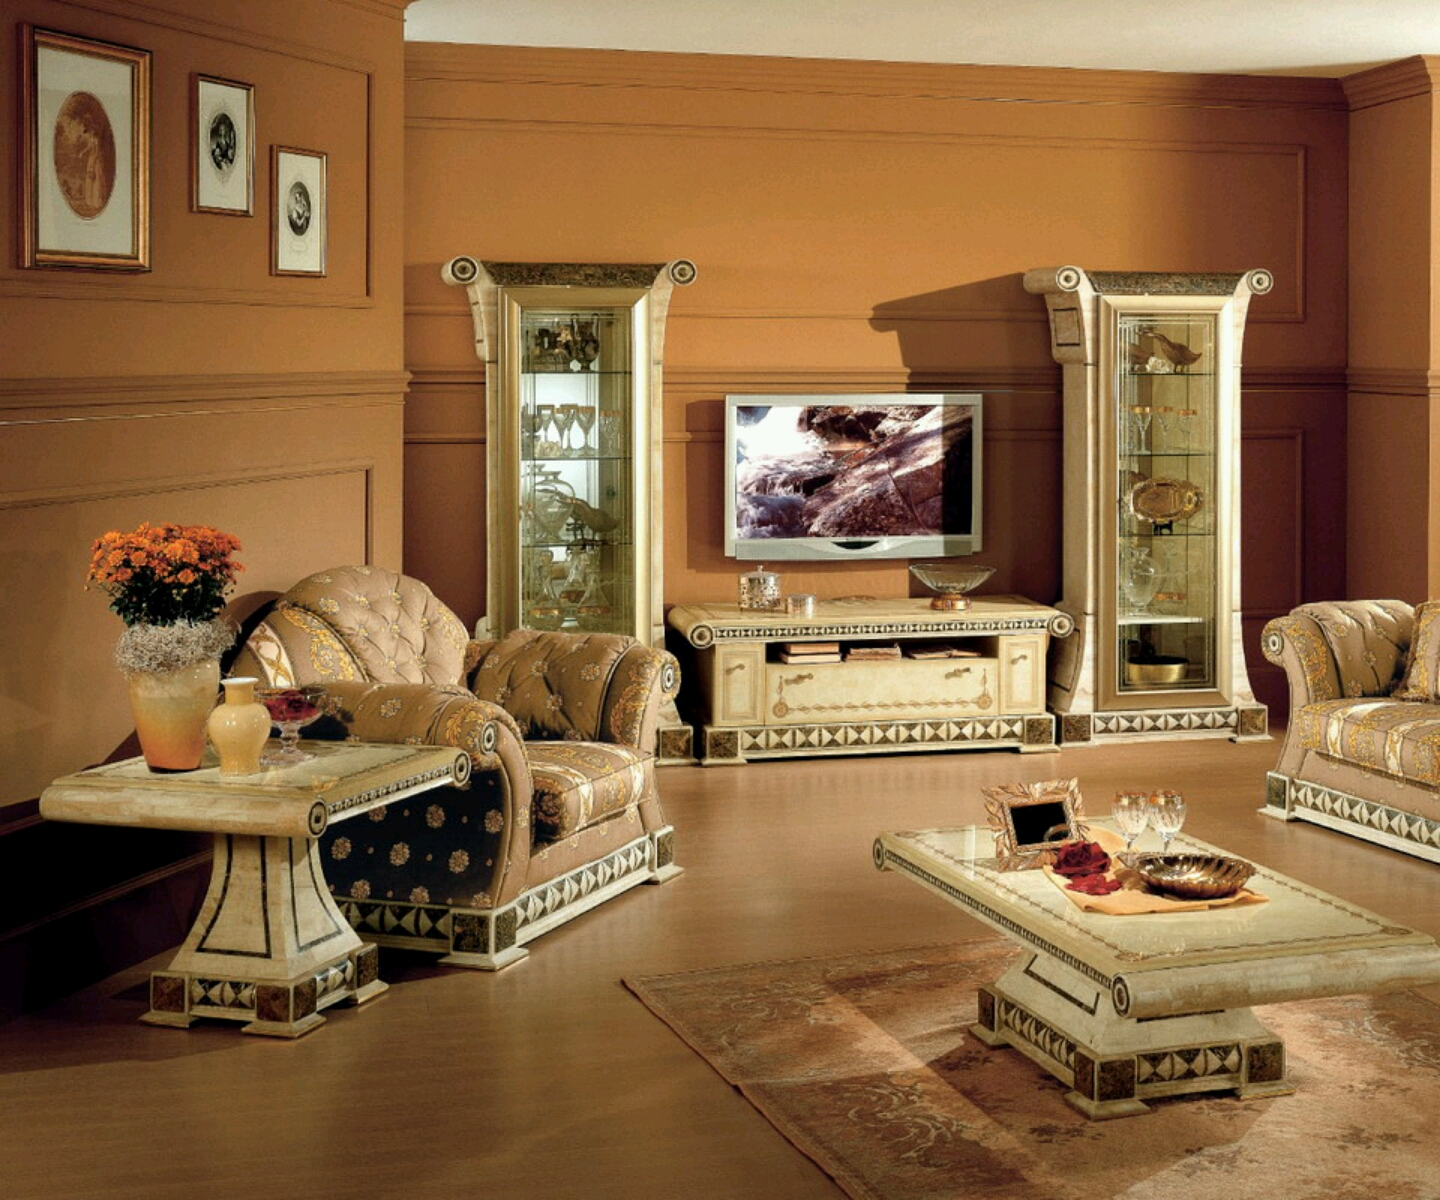 New home designs latest modern living room designs ideas for 2010 modern living room designs